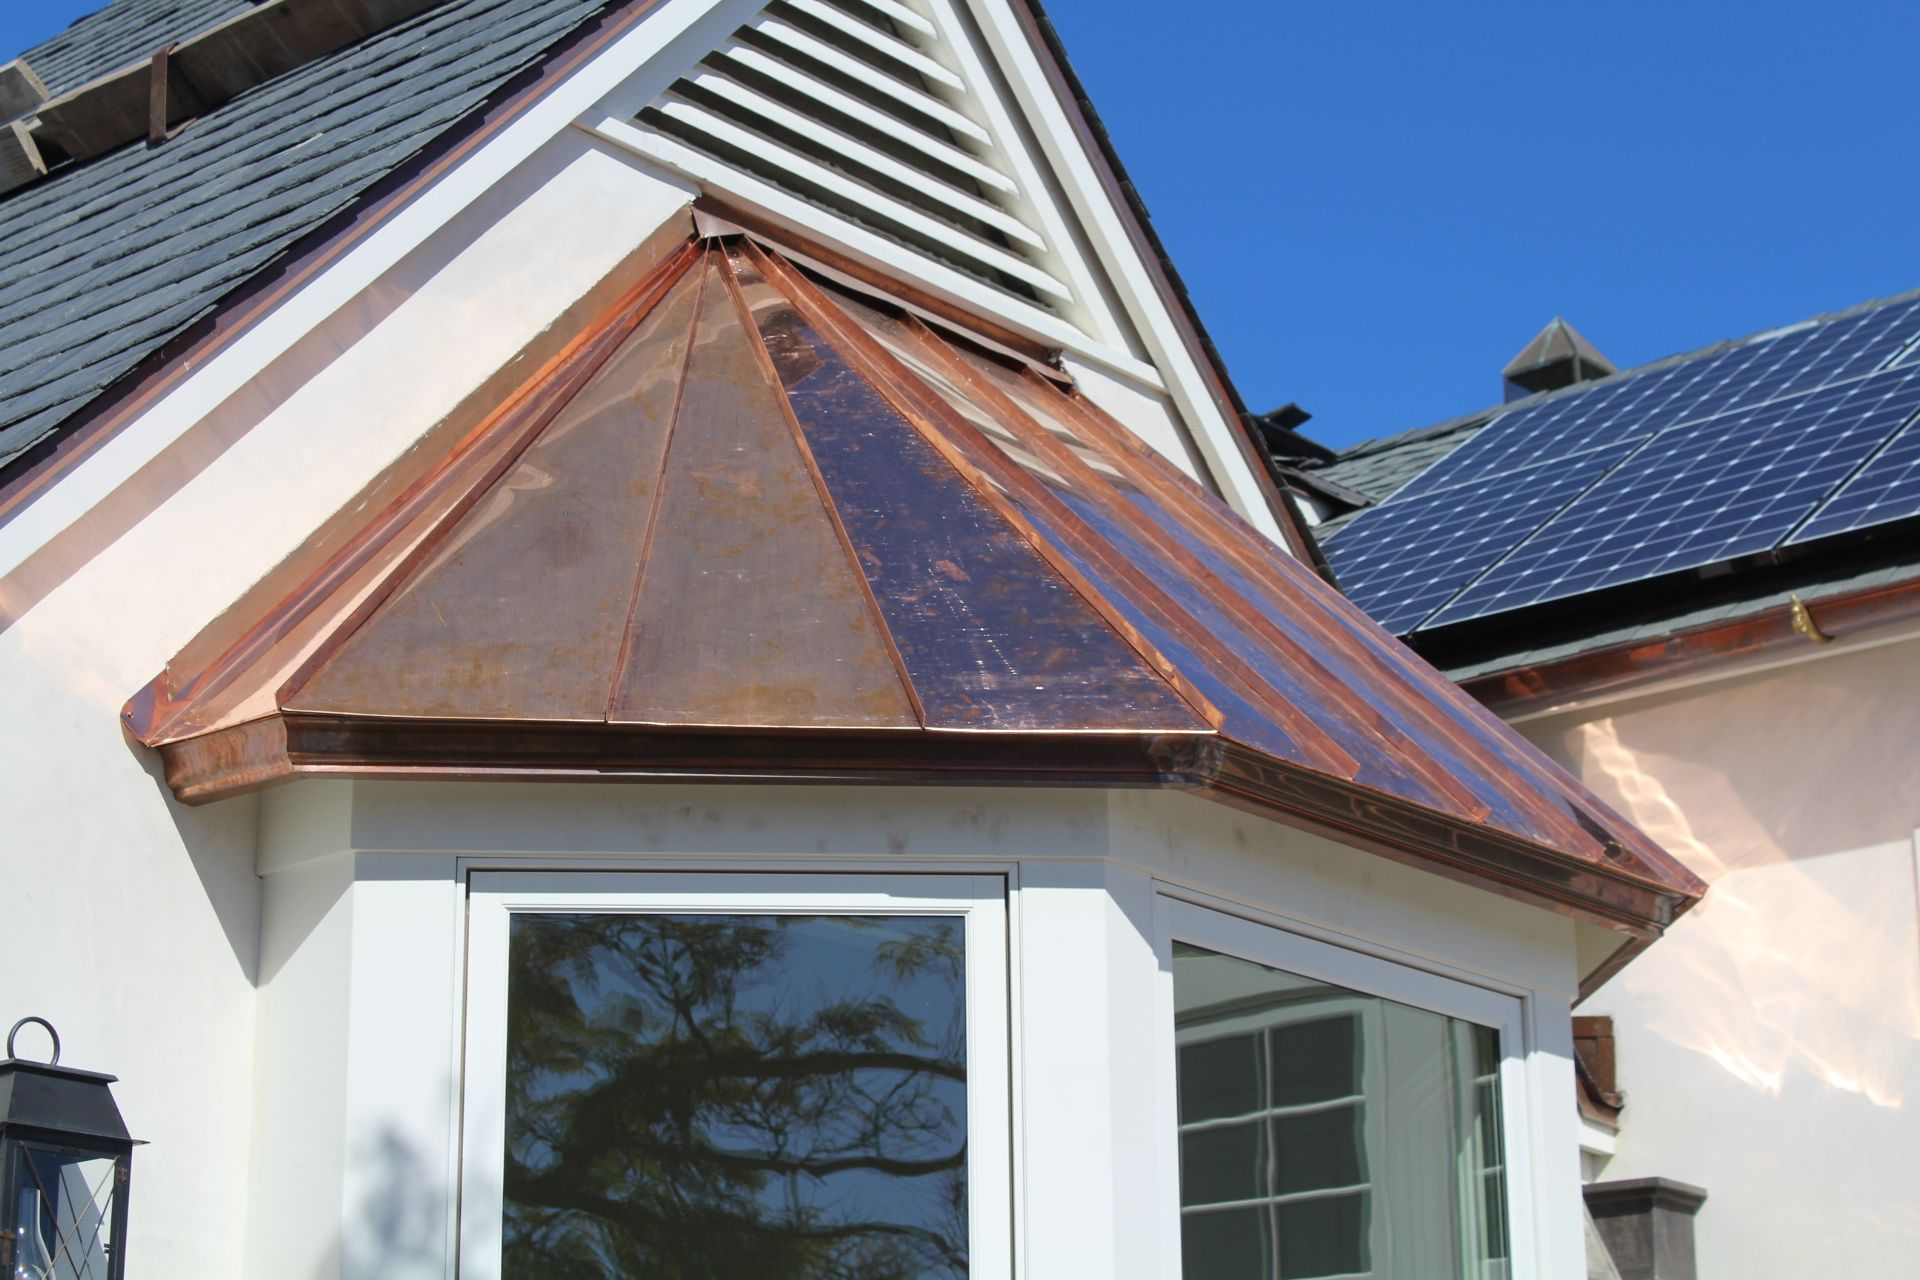 Standing Seam Bay Window Roof With Copper Molding Fascia In 2020 Metal Roof Copper Roof Copper Metal Roof